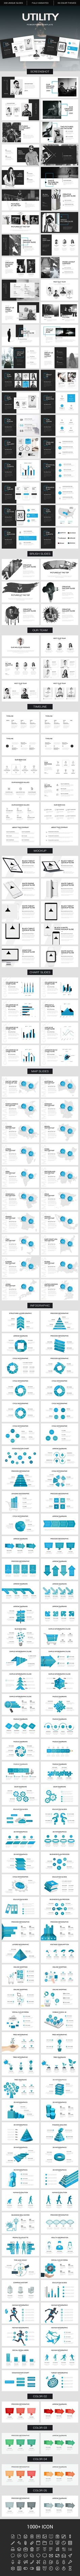 Utility Powerpoint Template - Creative PowerPoint Templates